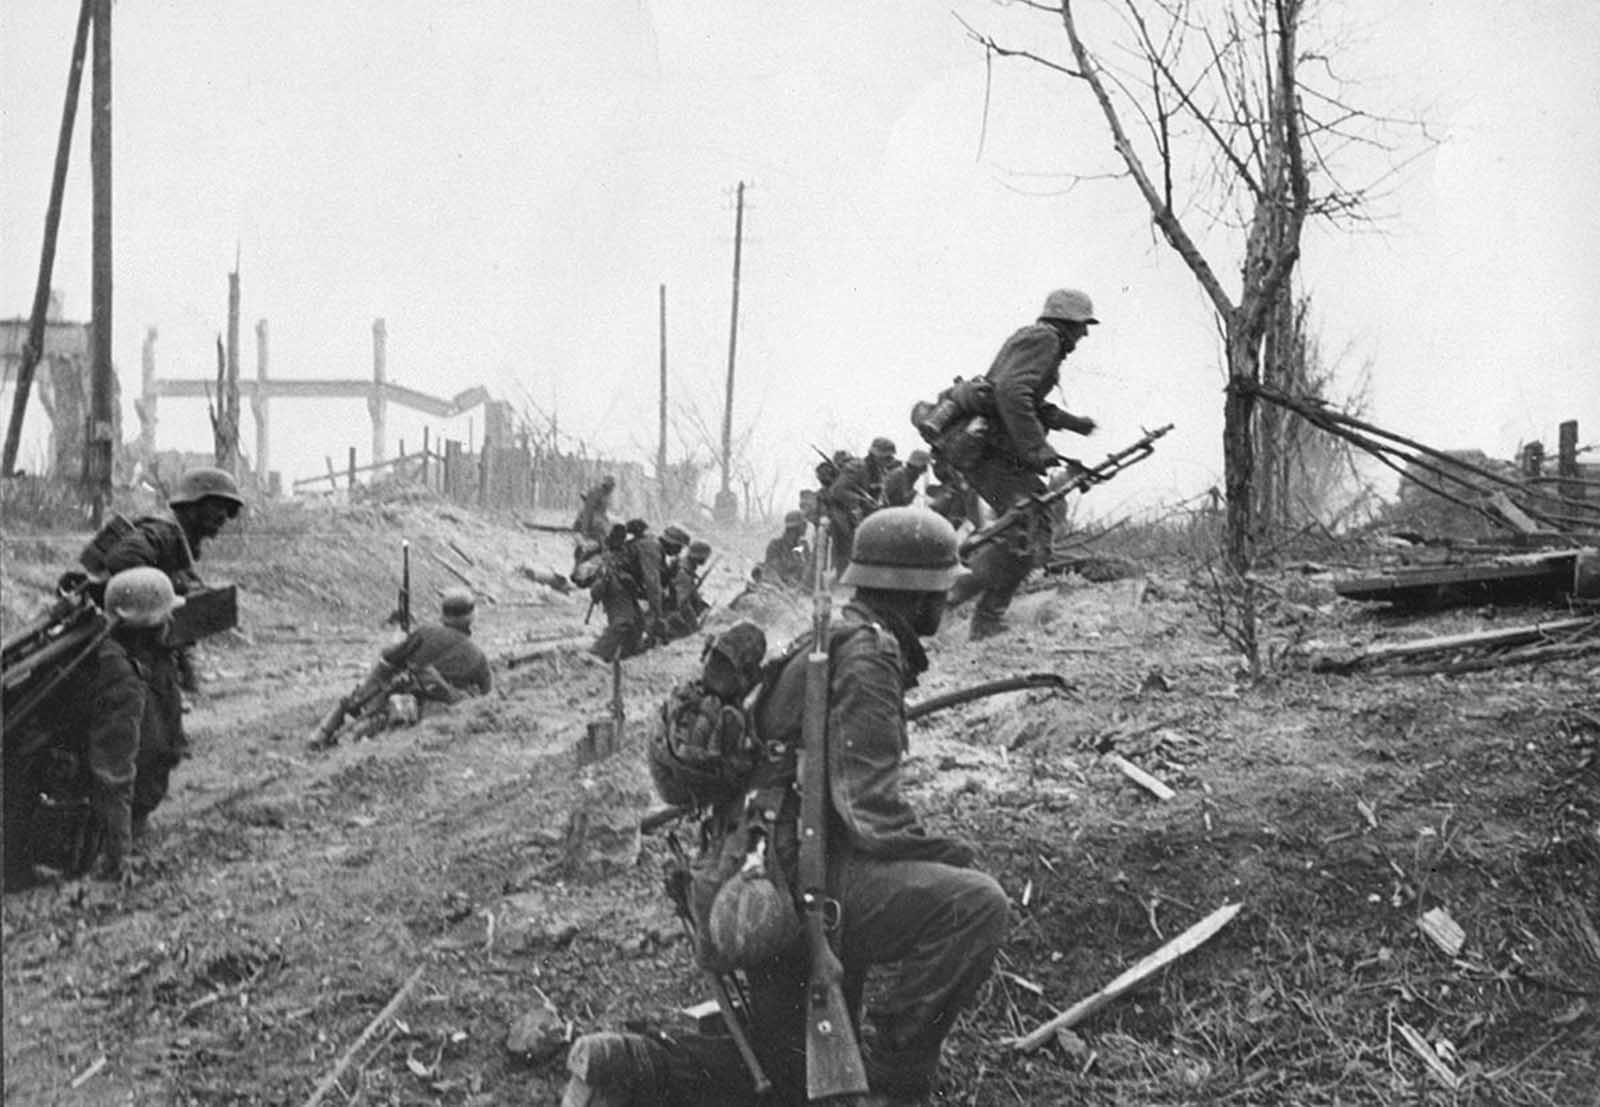 German soldiers advance outside Stalingrad late in 1942.